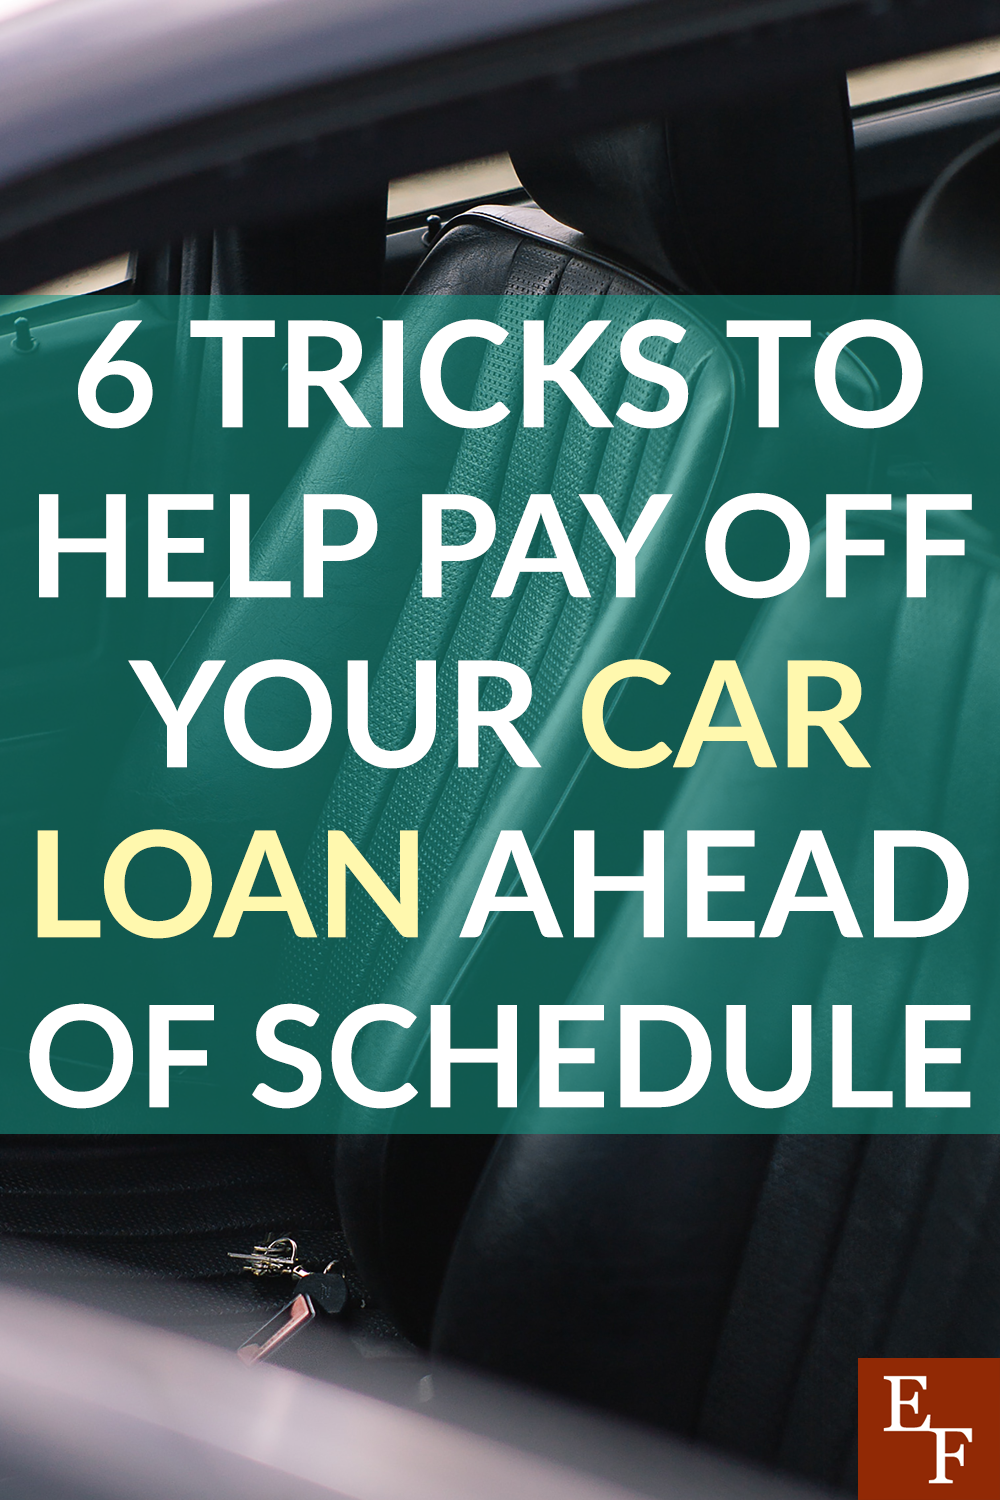 Having a nice new car is great. The car loan that comes with it? Not so much, we have a few tips to help pay off your car loan.